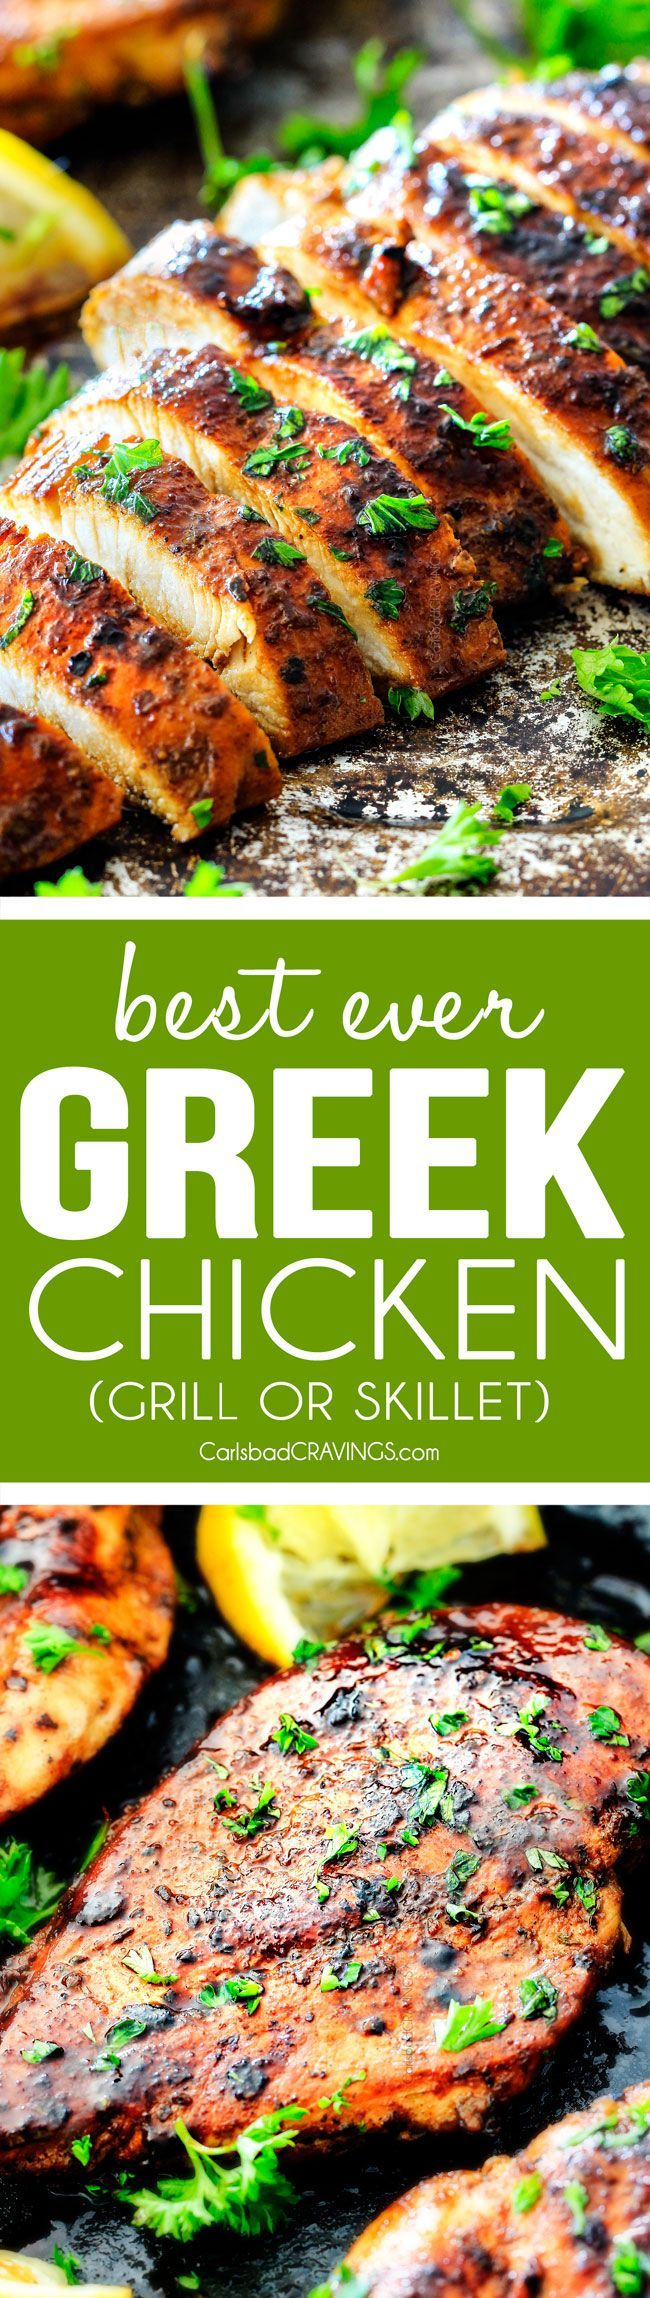 Greek Marinated Chicken is SO juicy, tender and exploding with flavor from an EASY marinade! perfect for pitas, salads, pasta, rice/veggie etc. I love having this on hand!